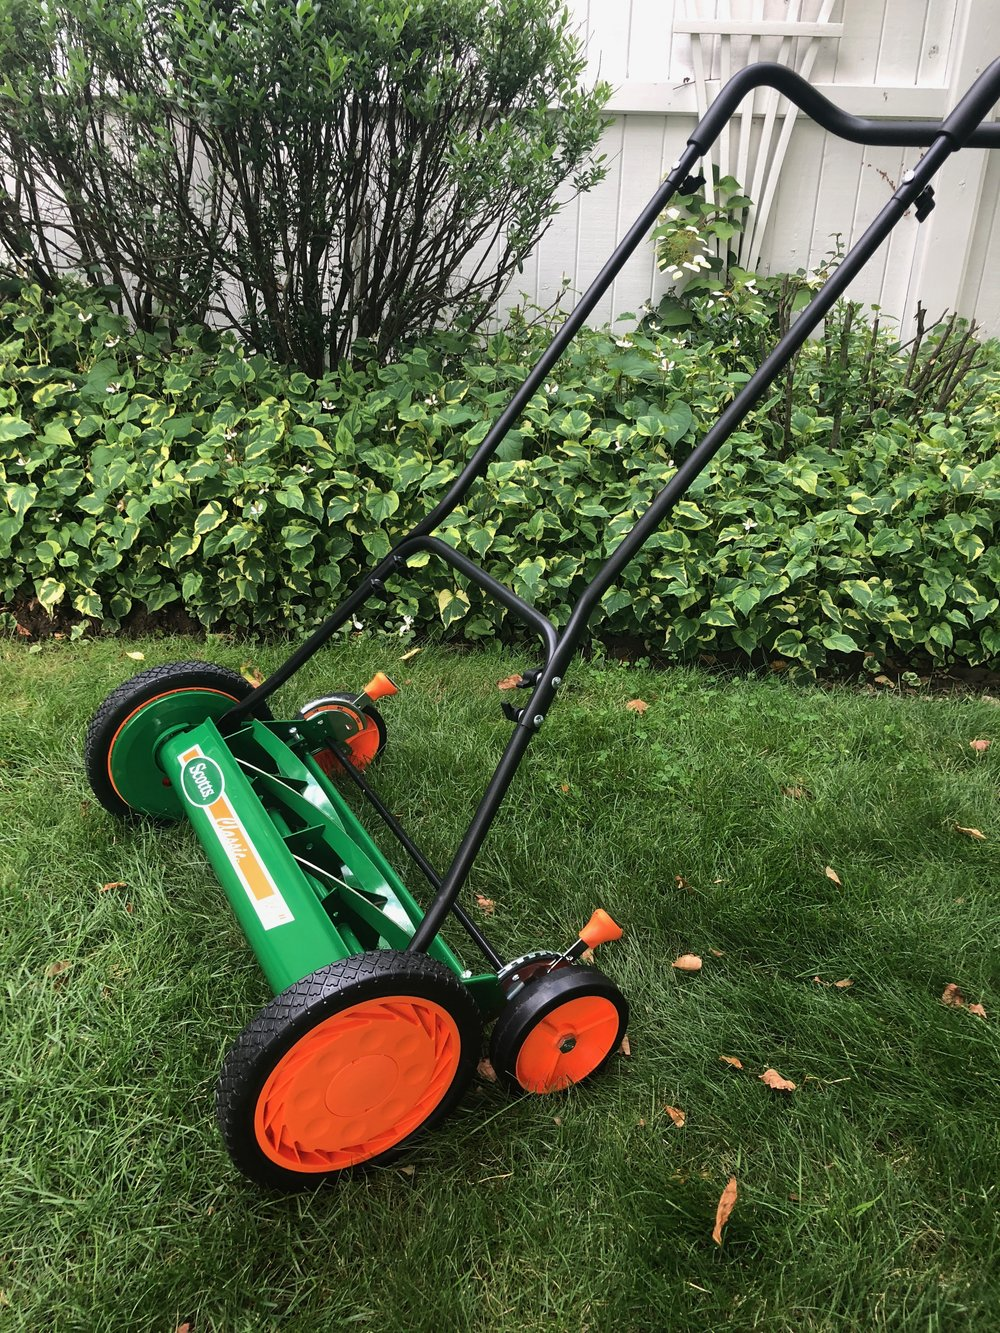 Call me crazy, but I was excited when I got this Scotts Mower as a gift from my husband. It is perfect for some of the smaller lawn areas of our yard.